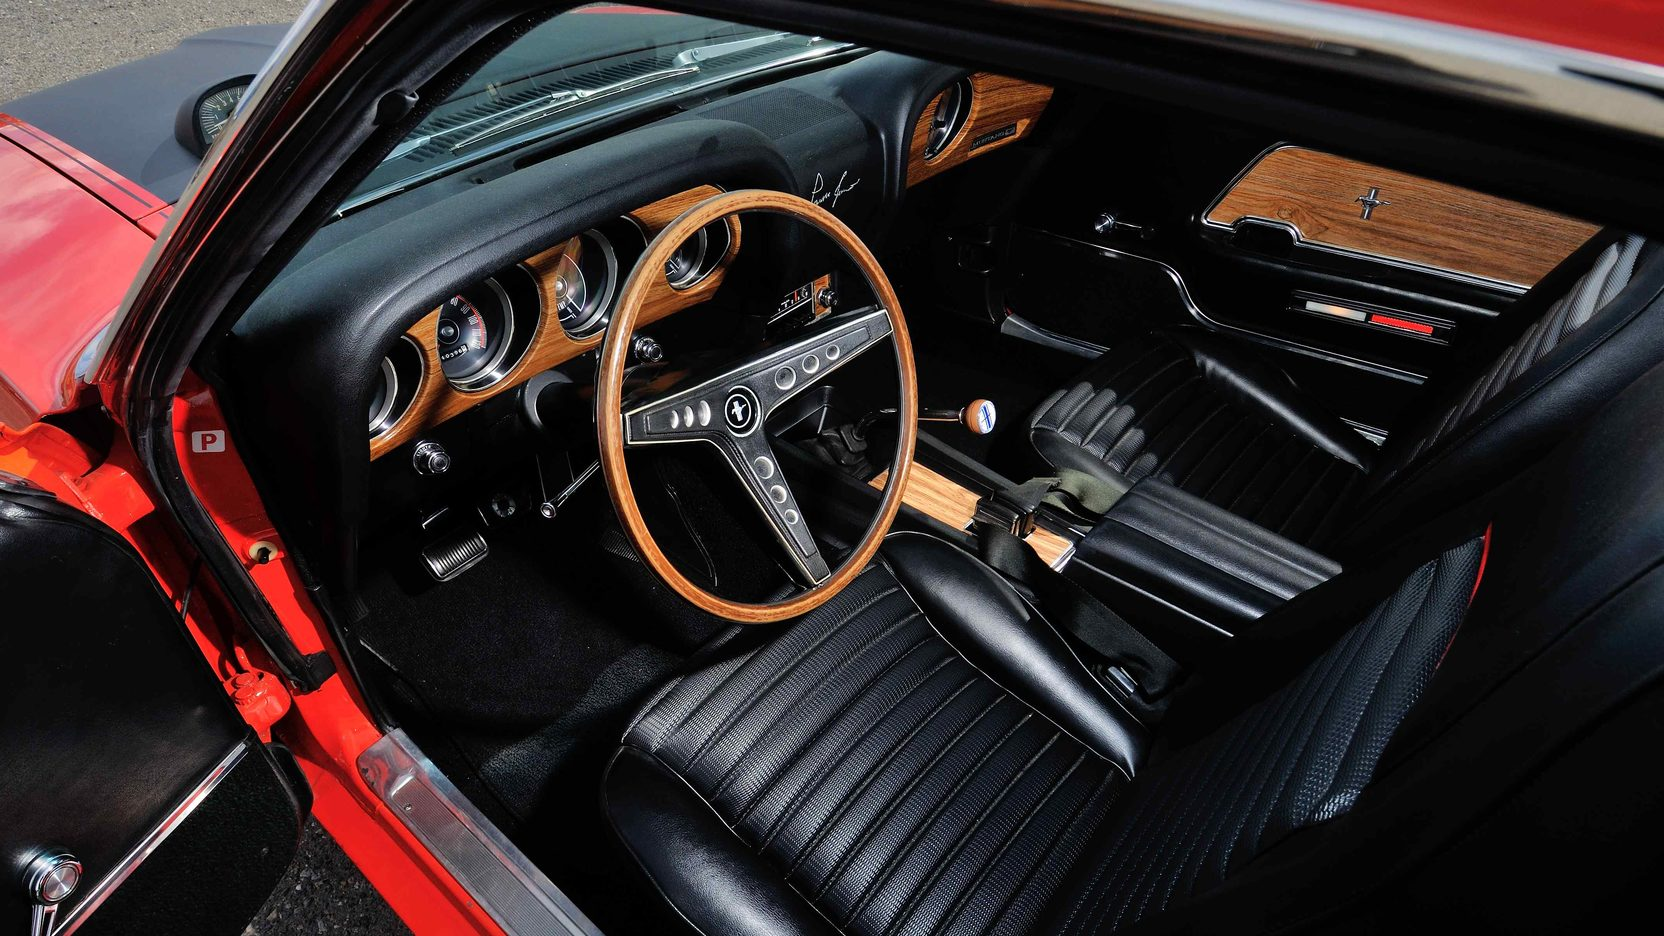 1969 Ford Mustang Boss 302 interior